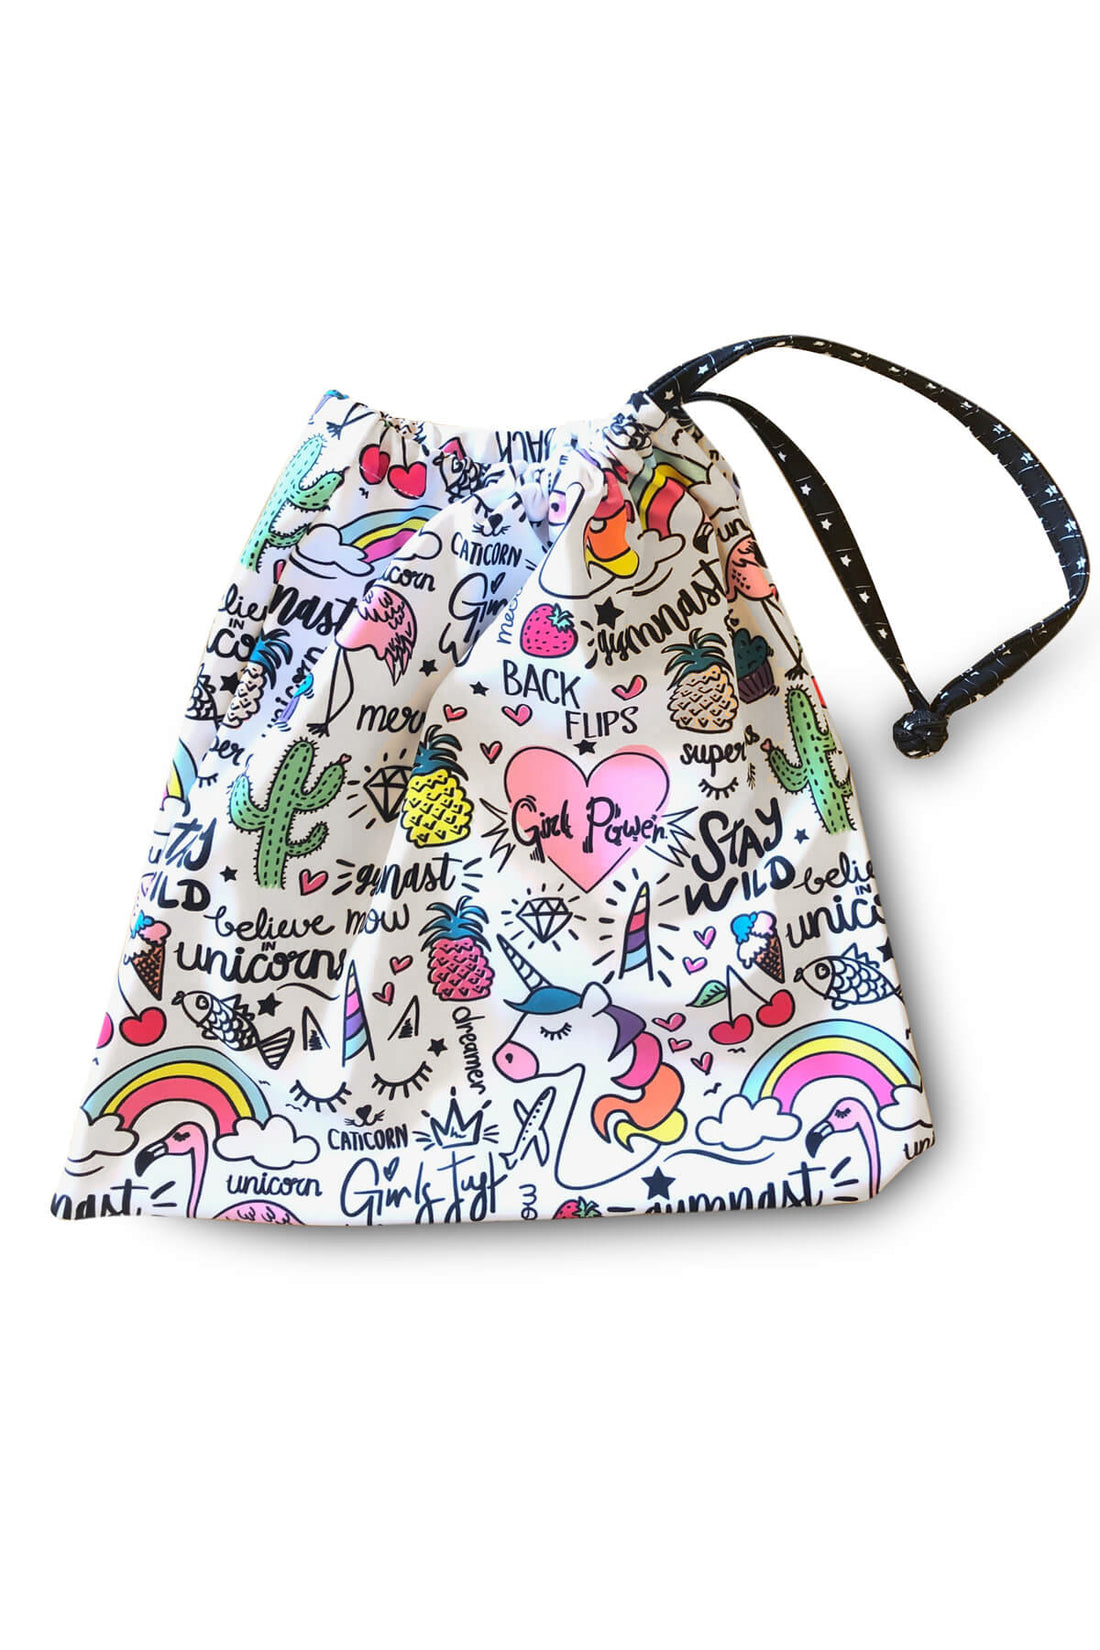 Unicorn Doodles Grip Bag